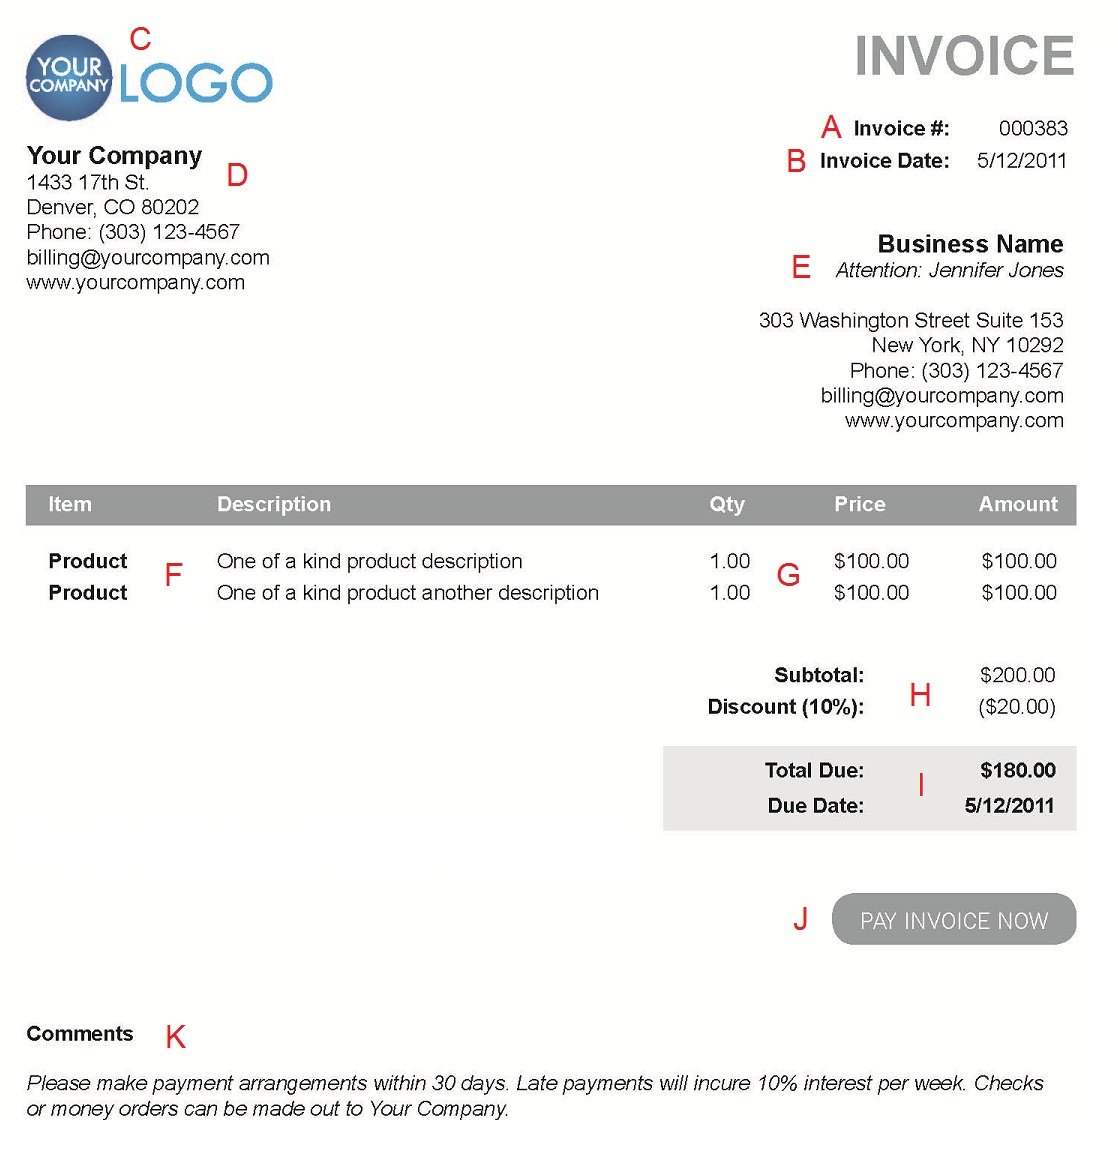 Ultrablogus  Prepossessing The  Different Sections Of An Electronic Payment Invoice With Lovely A  With Comely Cash Receipt Letter Also Sale Receipt For Car In Addition Rent Receipt Template Ontario And Lic Policy Online Receipt As Well As How To Make A Receipt Book Additionally Neat Receipt Alternative From Paysimplecom With Ultrablogus  Lovely The  Different Sections Of An Electronic Payment Invoice With Comely A  And Prepossessing Cash Receipt Letter Also Sale Receipt For Car In Addition Rent Receipt Template Ontario From Paysimplecom